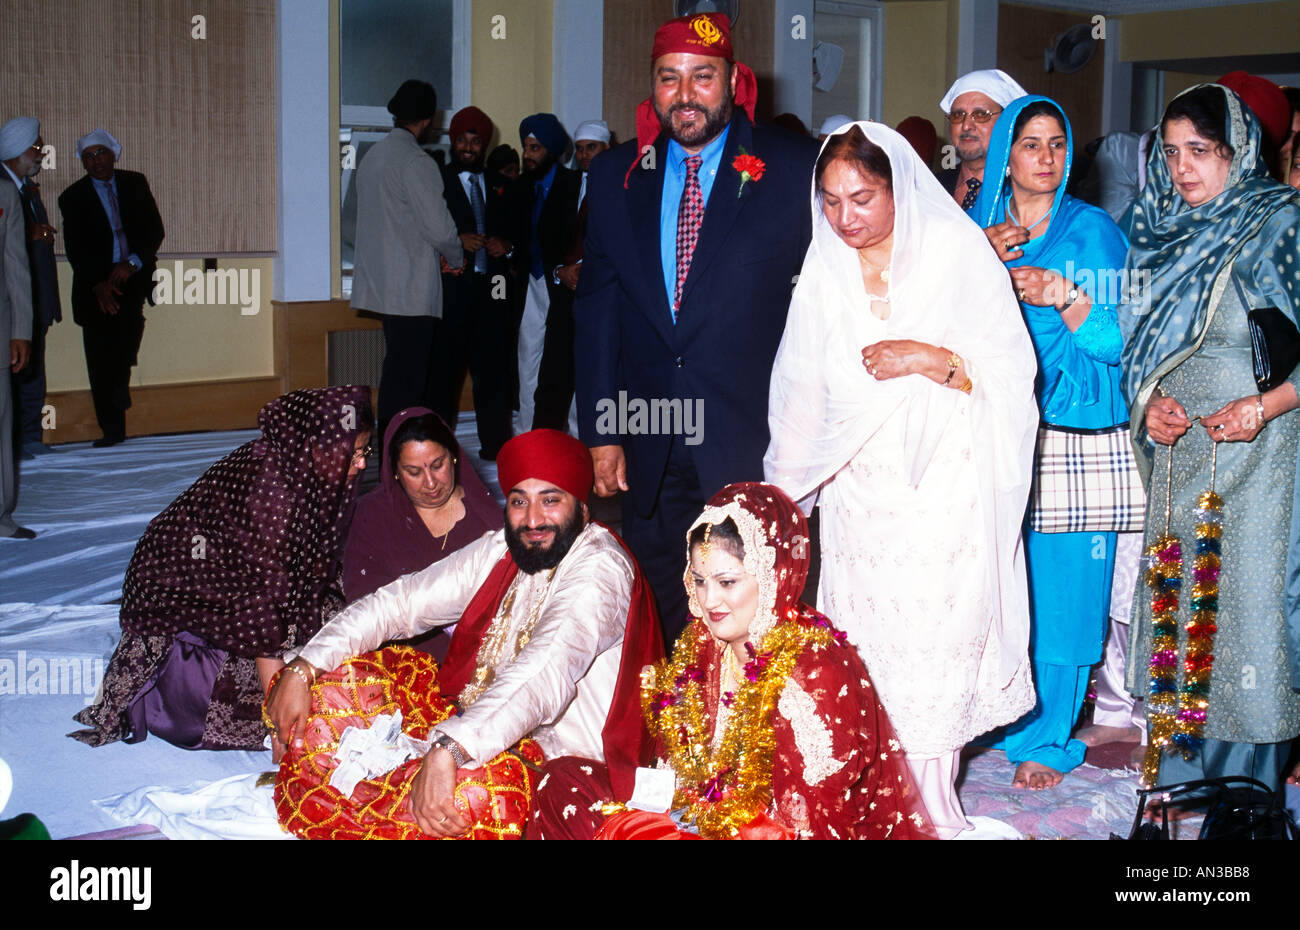 Shepherds Bush London Sikh Gurdwara Hochzeit Braut Brautigam